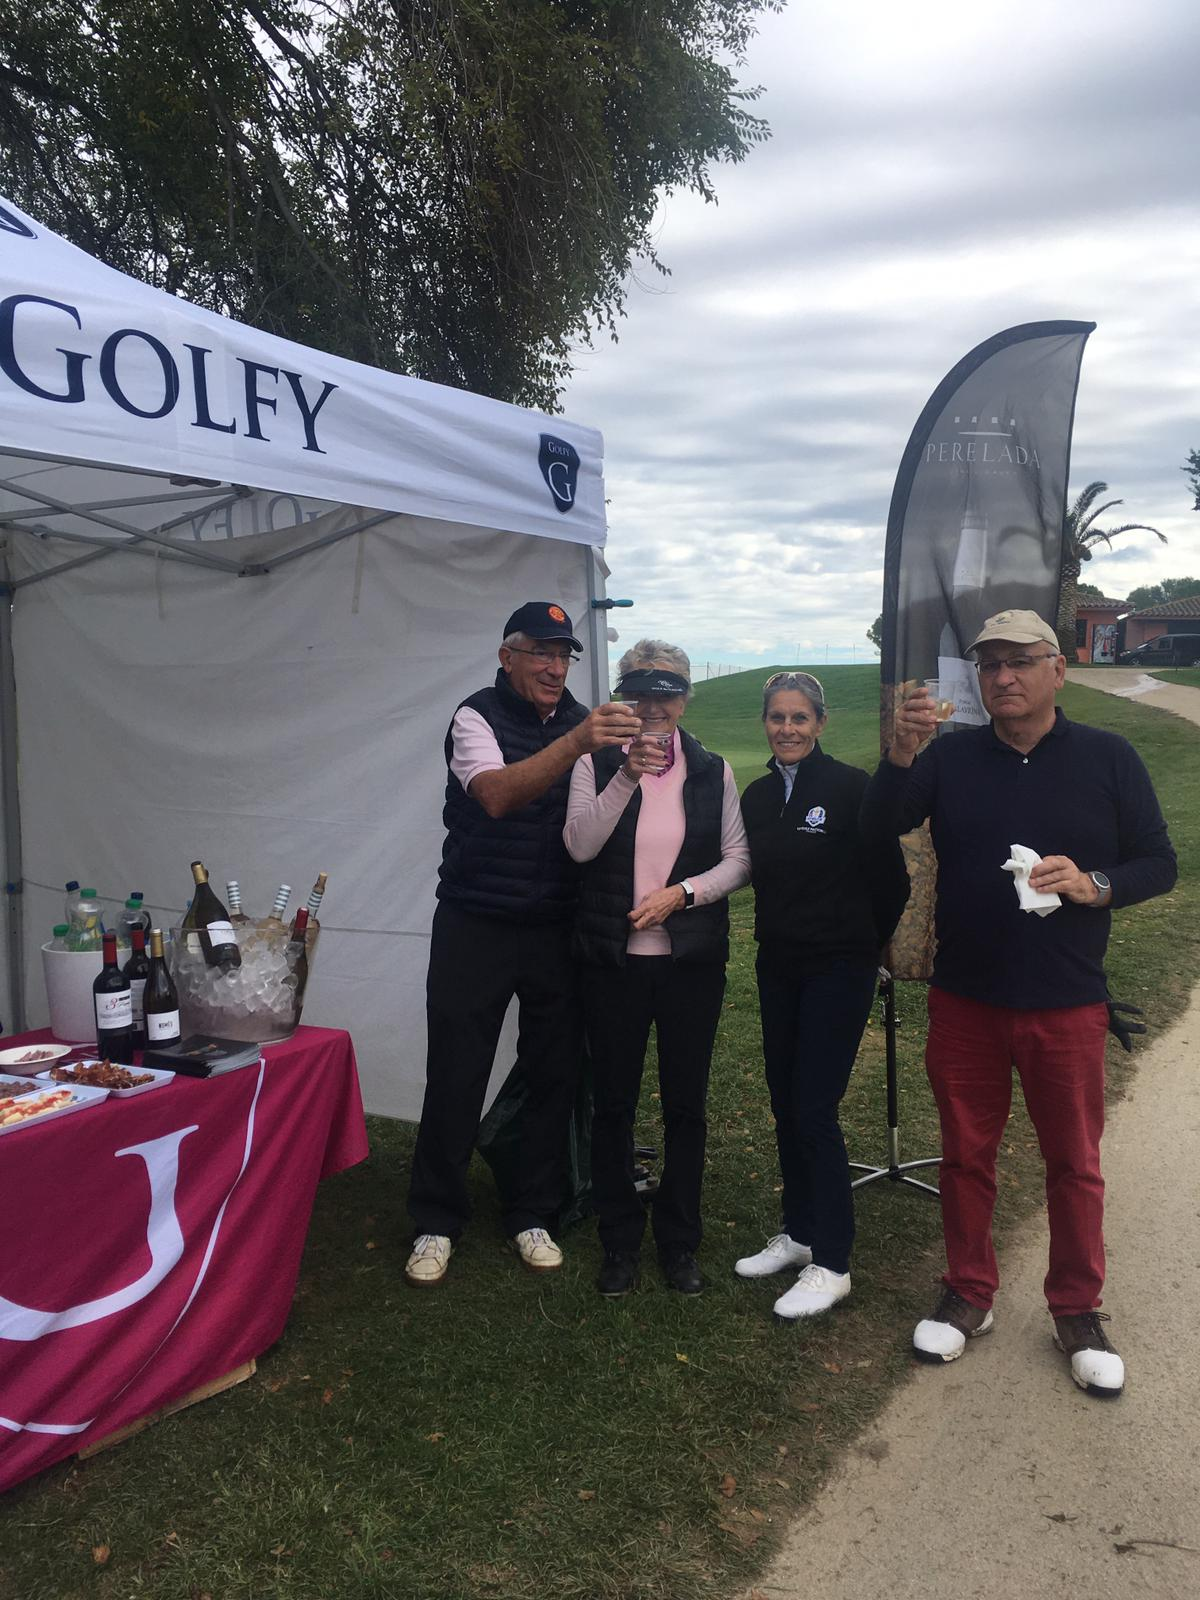 WhatsApp-Image-2019-11-07-at-11.32.37 Golfy Cup Catalogne 2019